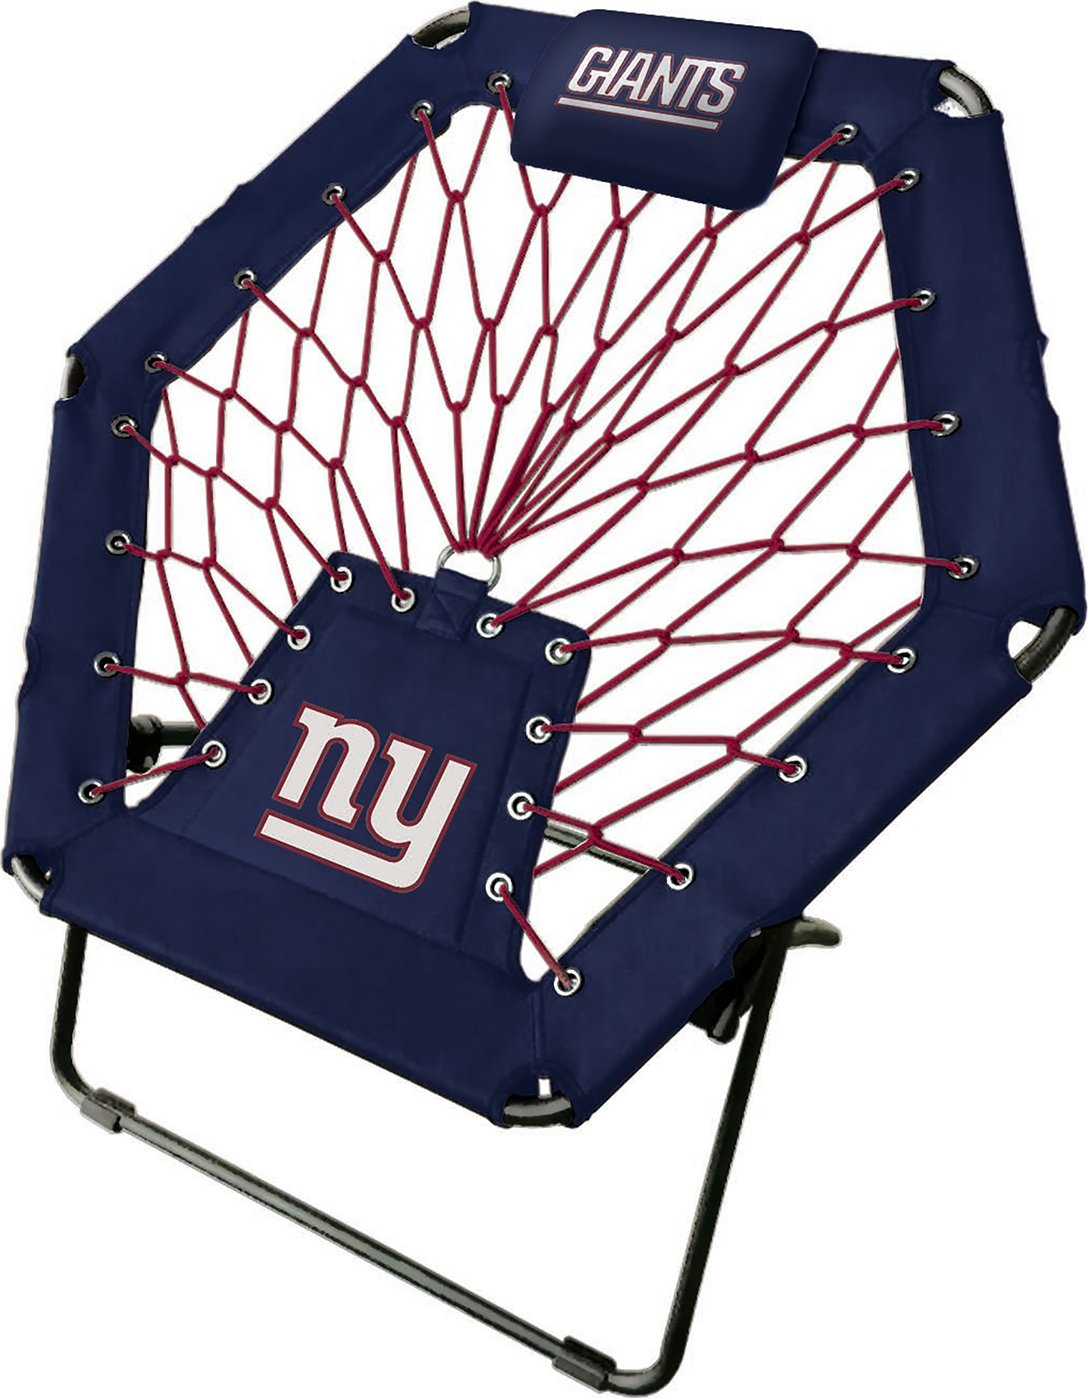 Imperial Officially Licensed NFL Furniture: Premium Bungee Chair, New York Giants by Imperial